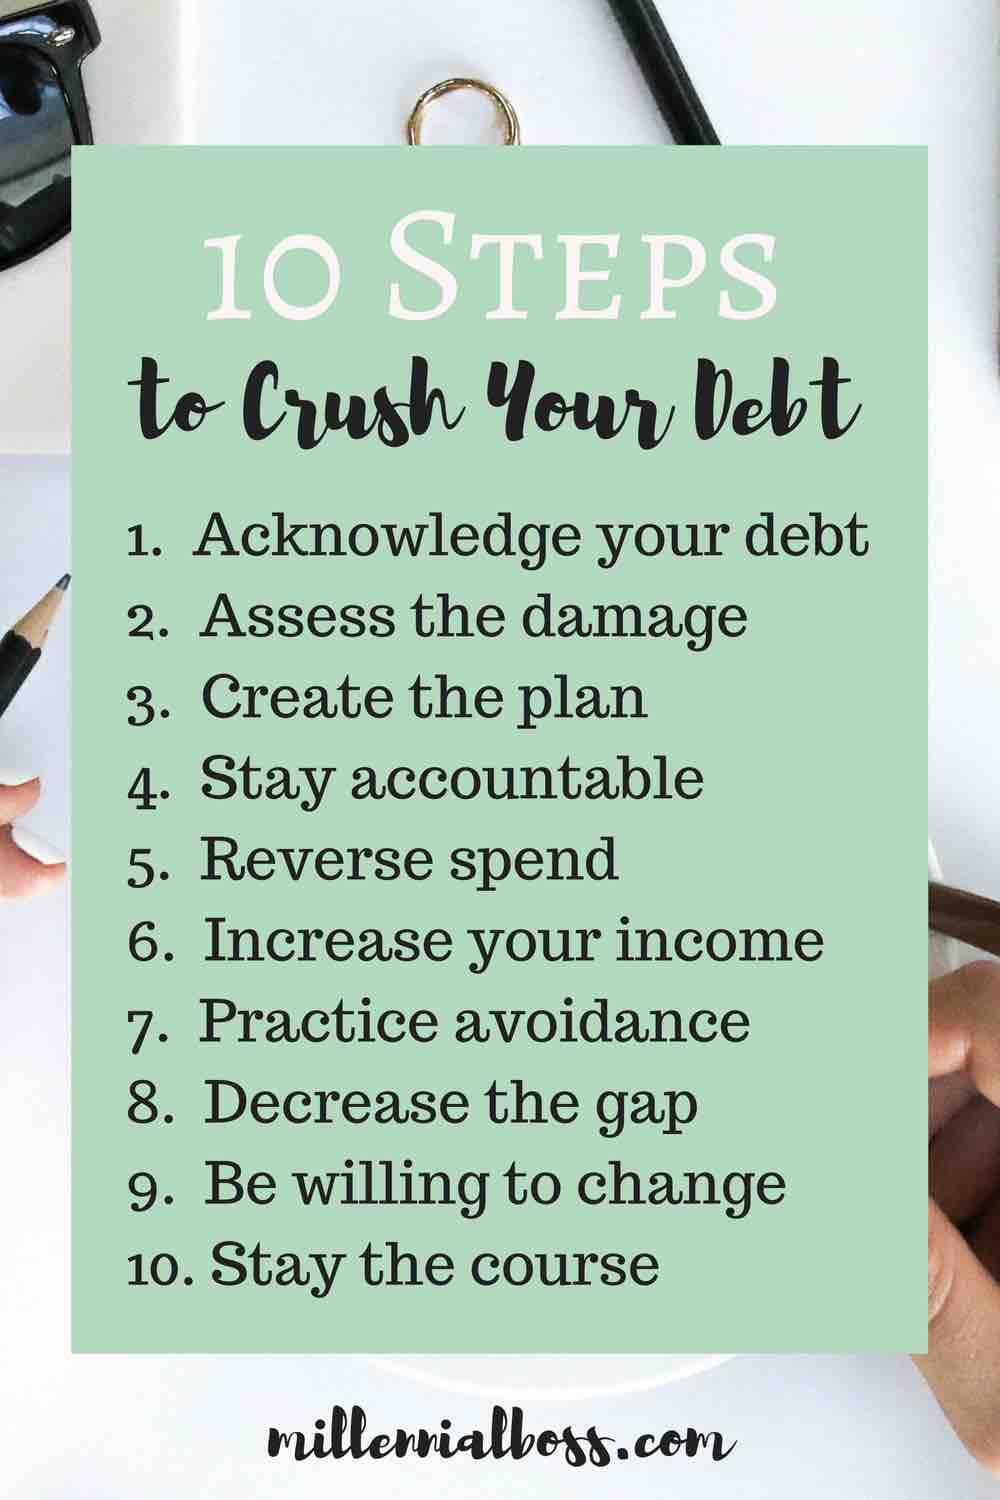 Great tips in this post for paying off debt. Thanks for sharing!